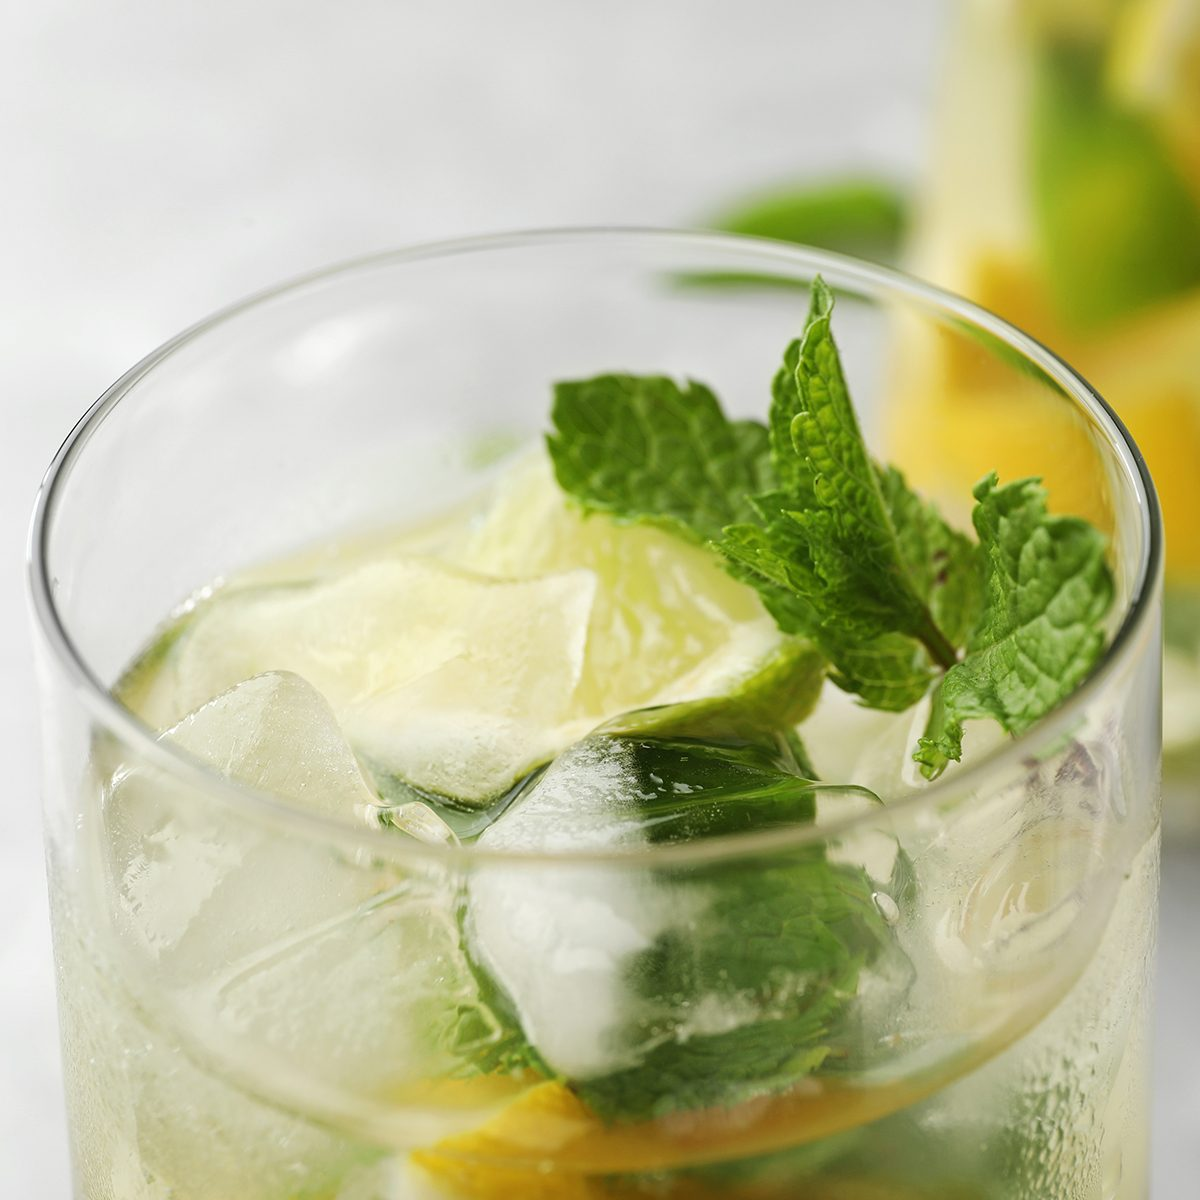 Glass of refreshing lemonade with mint on table, closeup. Summer drink; Shutterstock ID 1441602839; Job (TFH, TOH, RD, BNB, CWM, CM): TOH